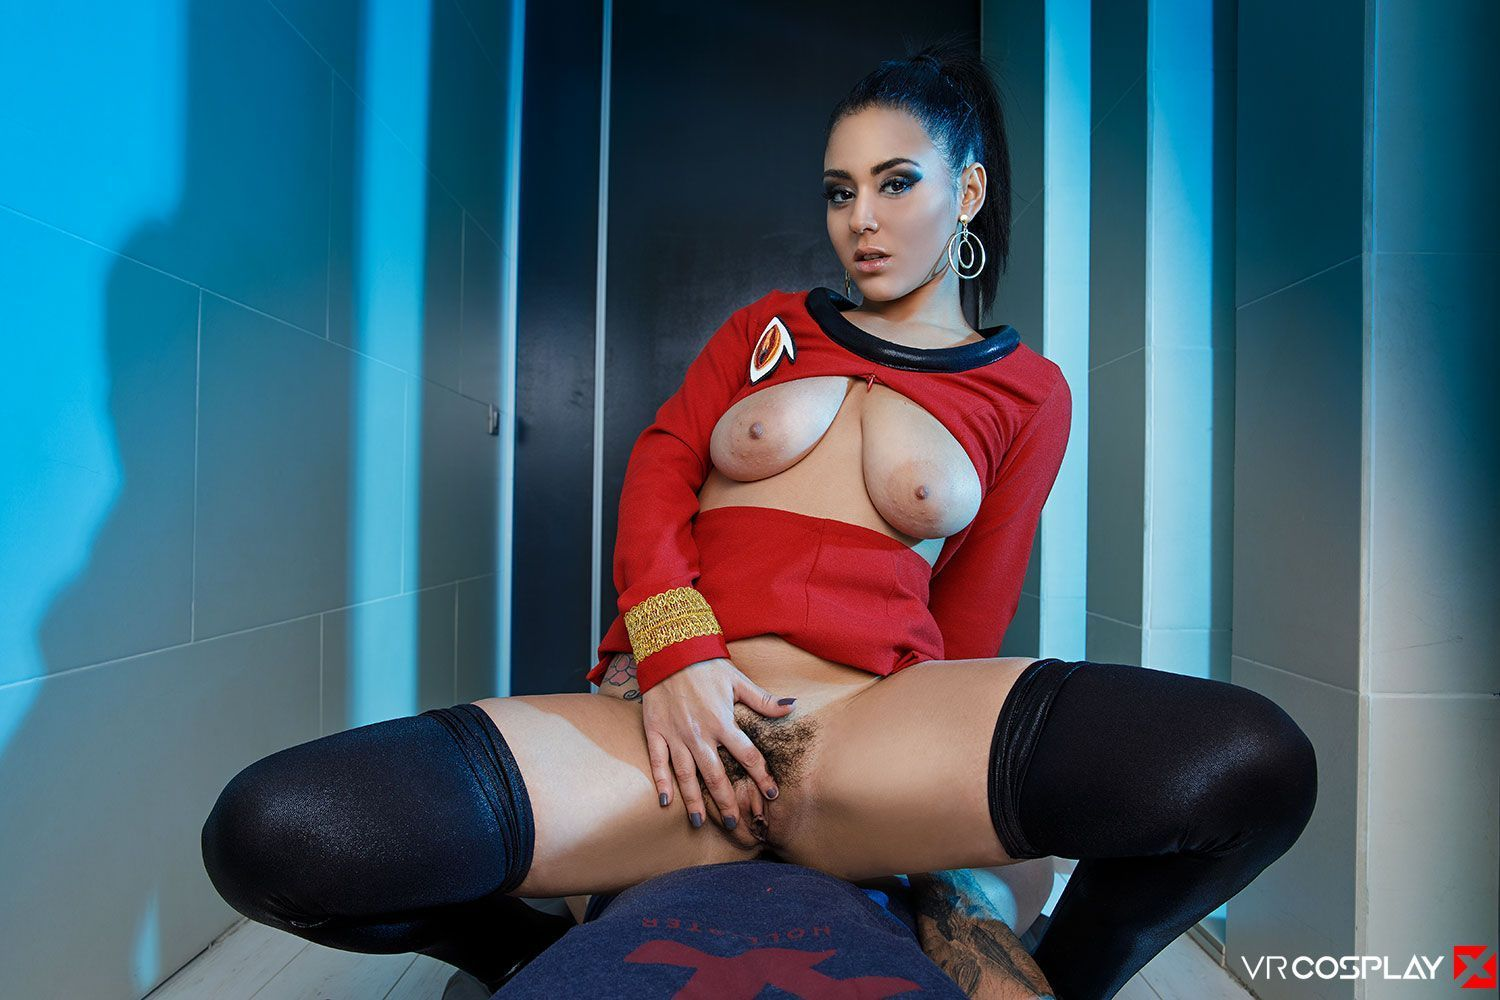 Parody xxx star trek - Xxx pics. Comments: 1